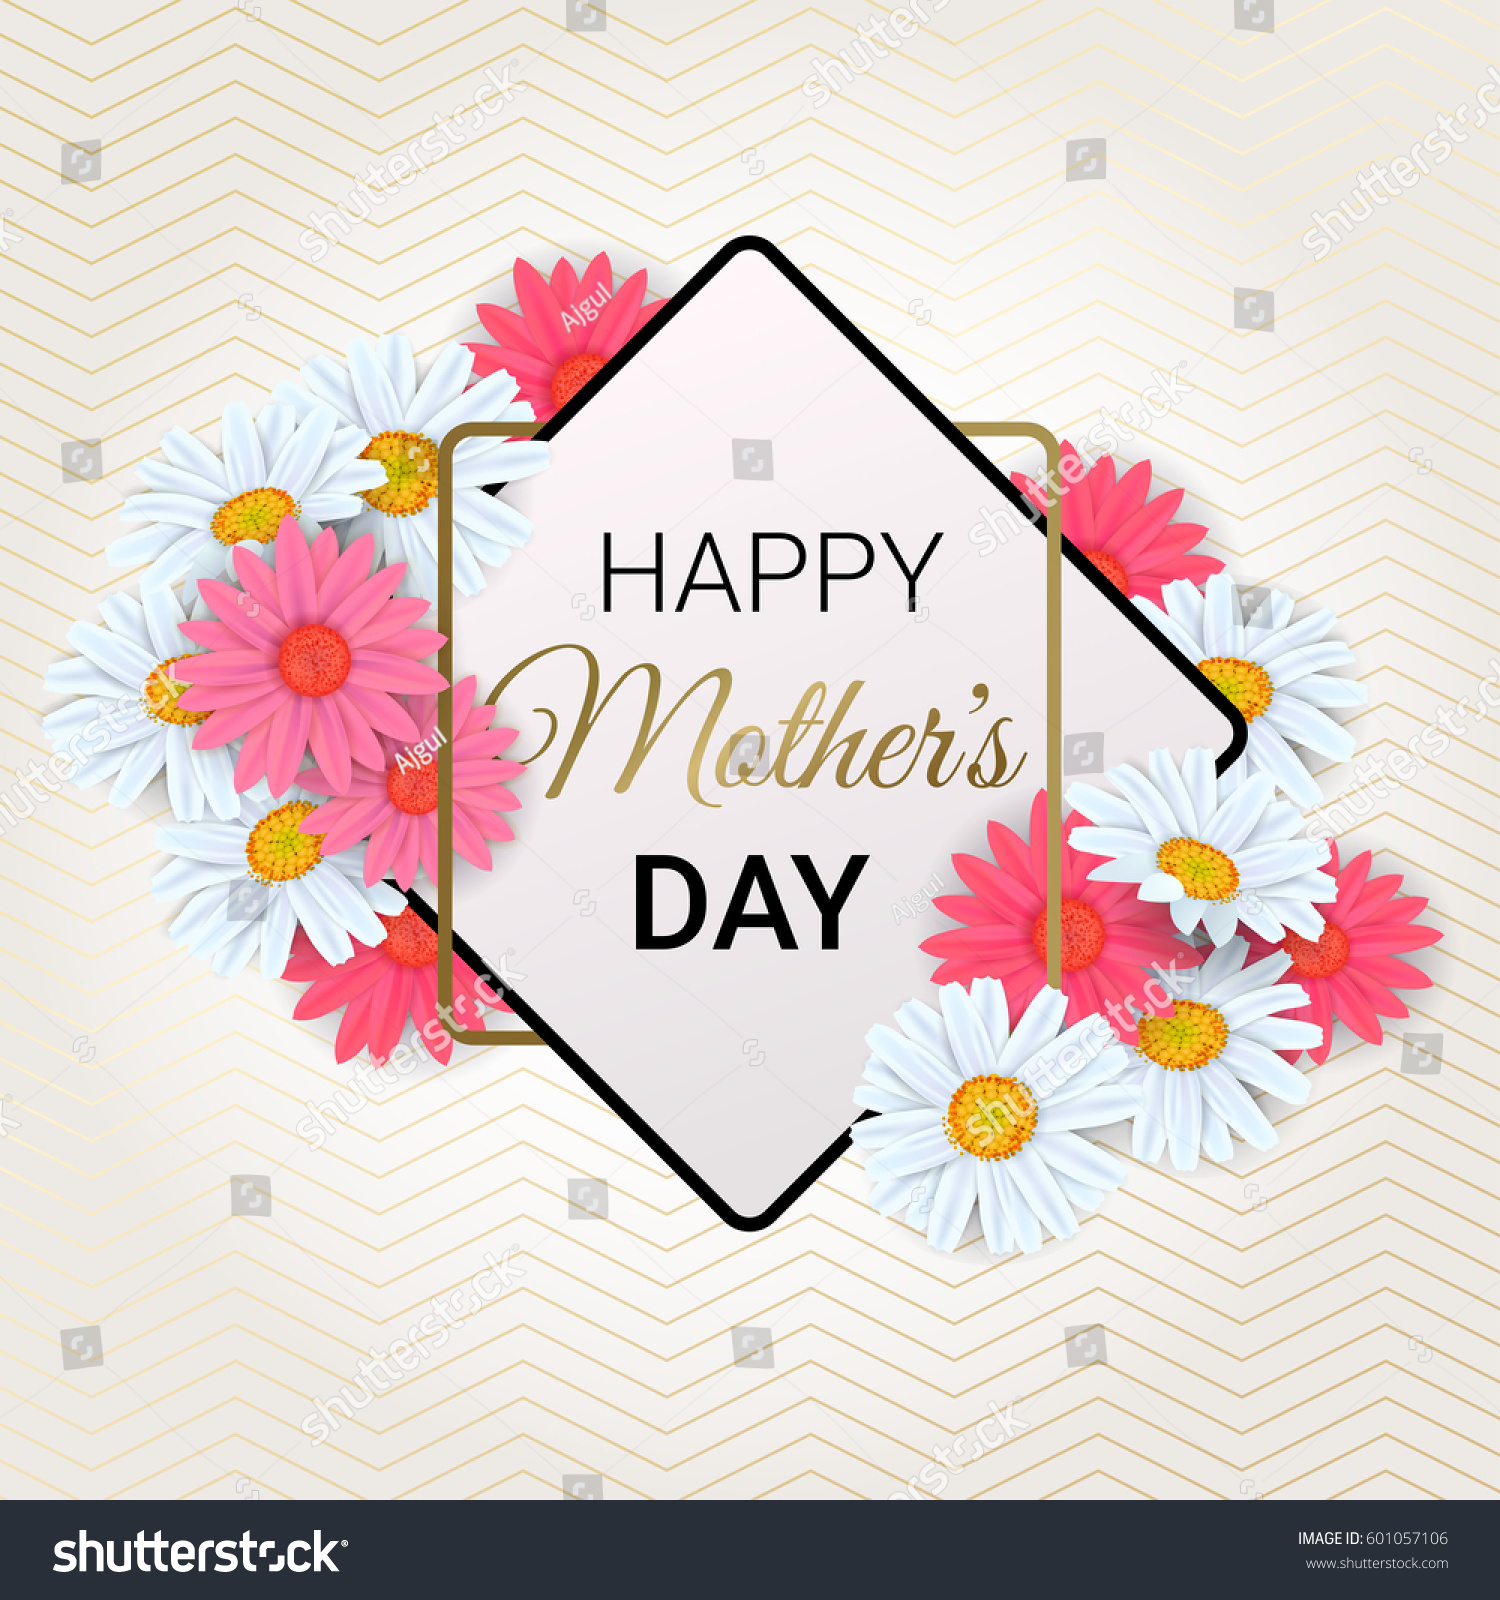 Creative Floral Flyer Of Happy Mothers Day Template For: Mothers Day Background Beautiful Daisy Flowers Stock